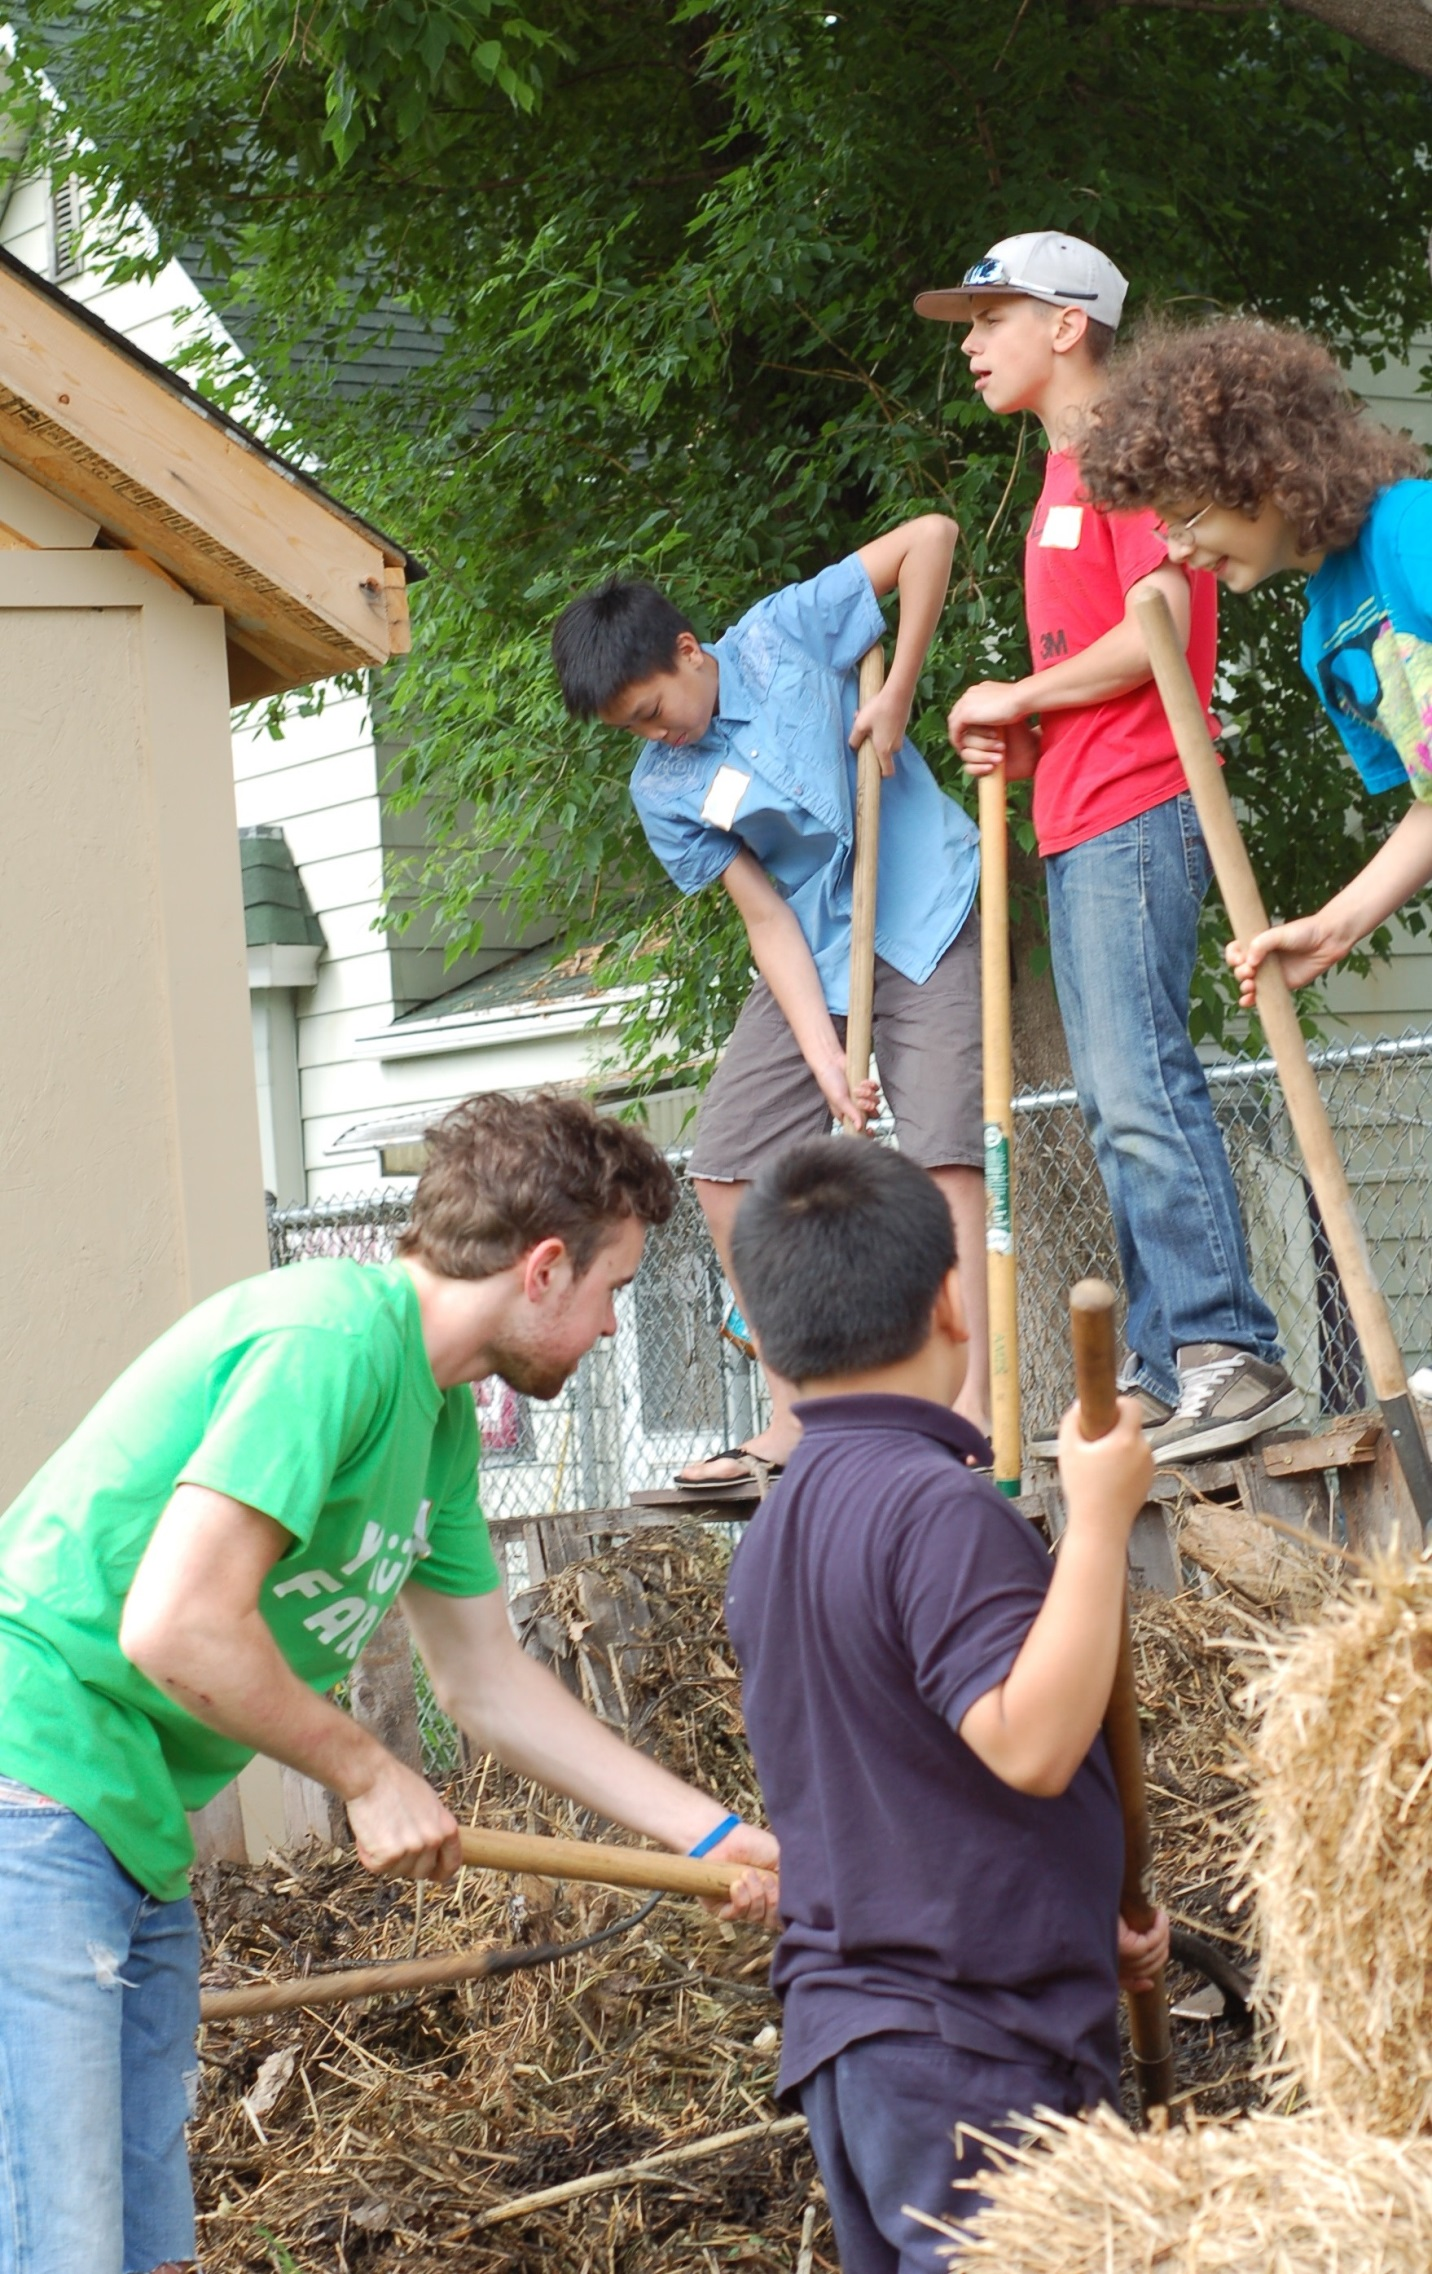 From Kale to Composting - The Youth Farm Experience